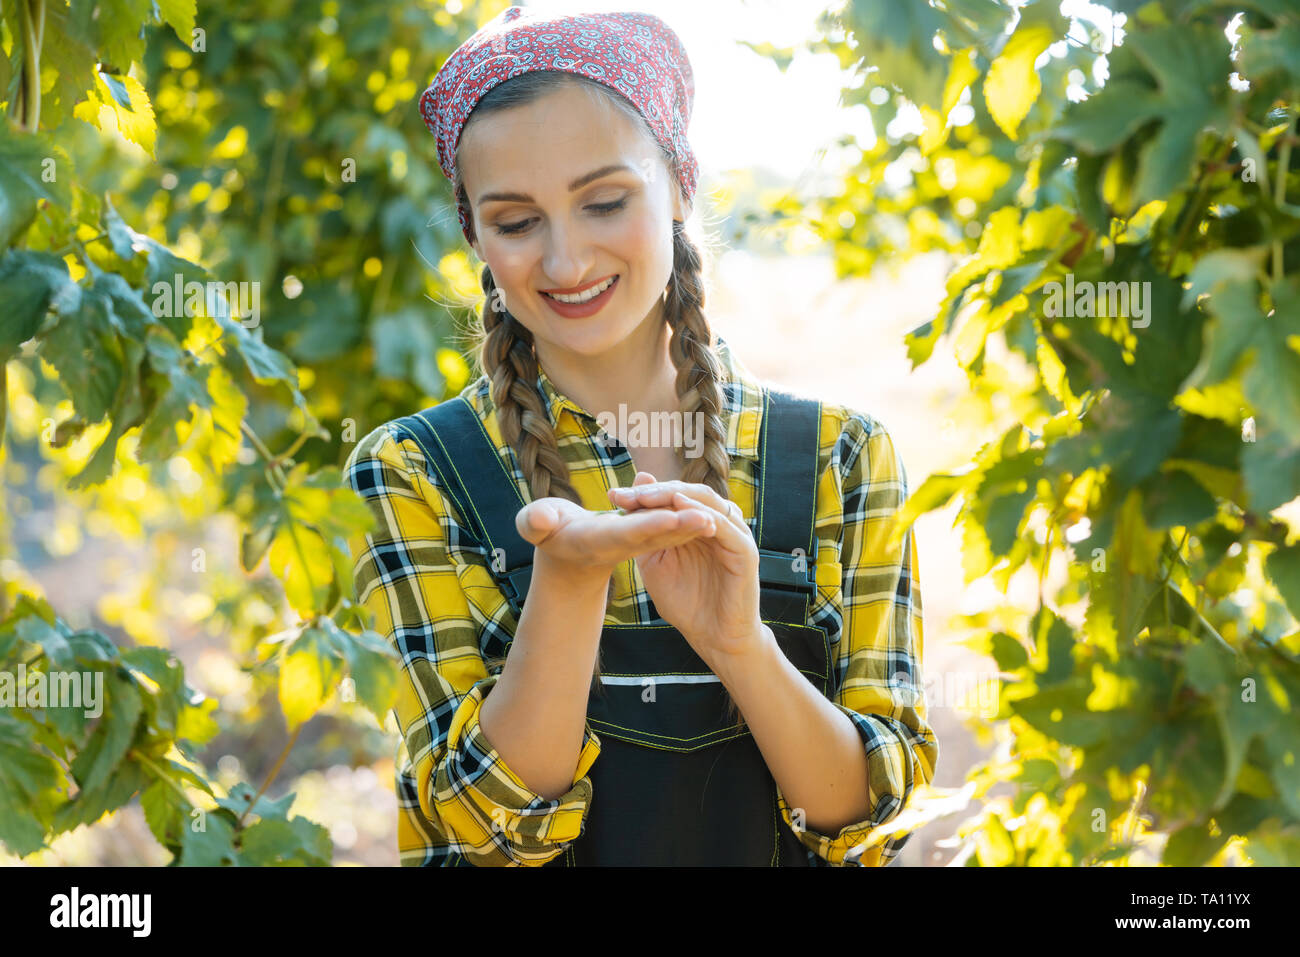 Hands of farmer woman holding hop umbels for testing - Stock Image